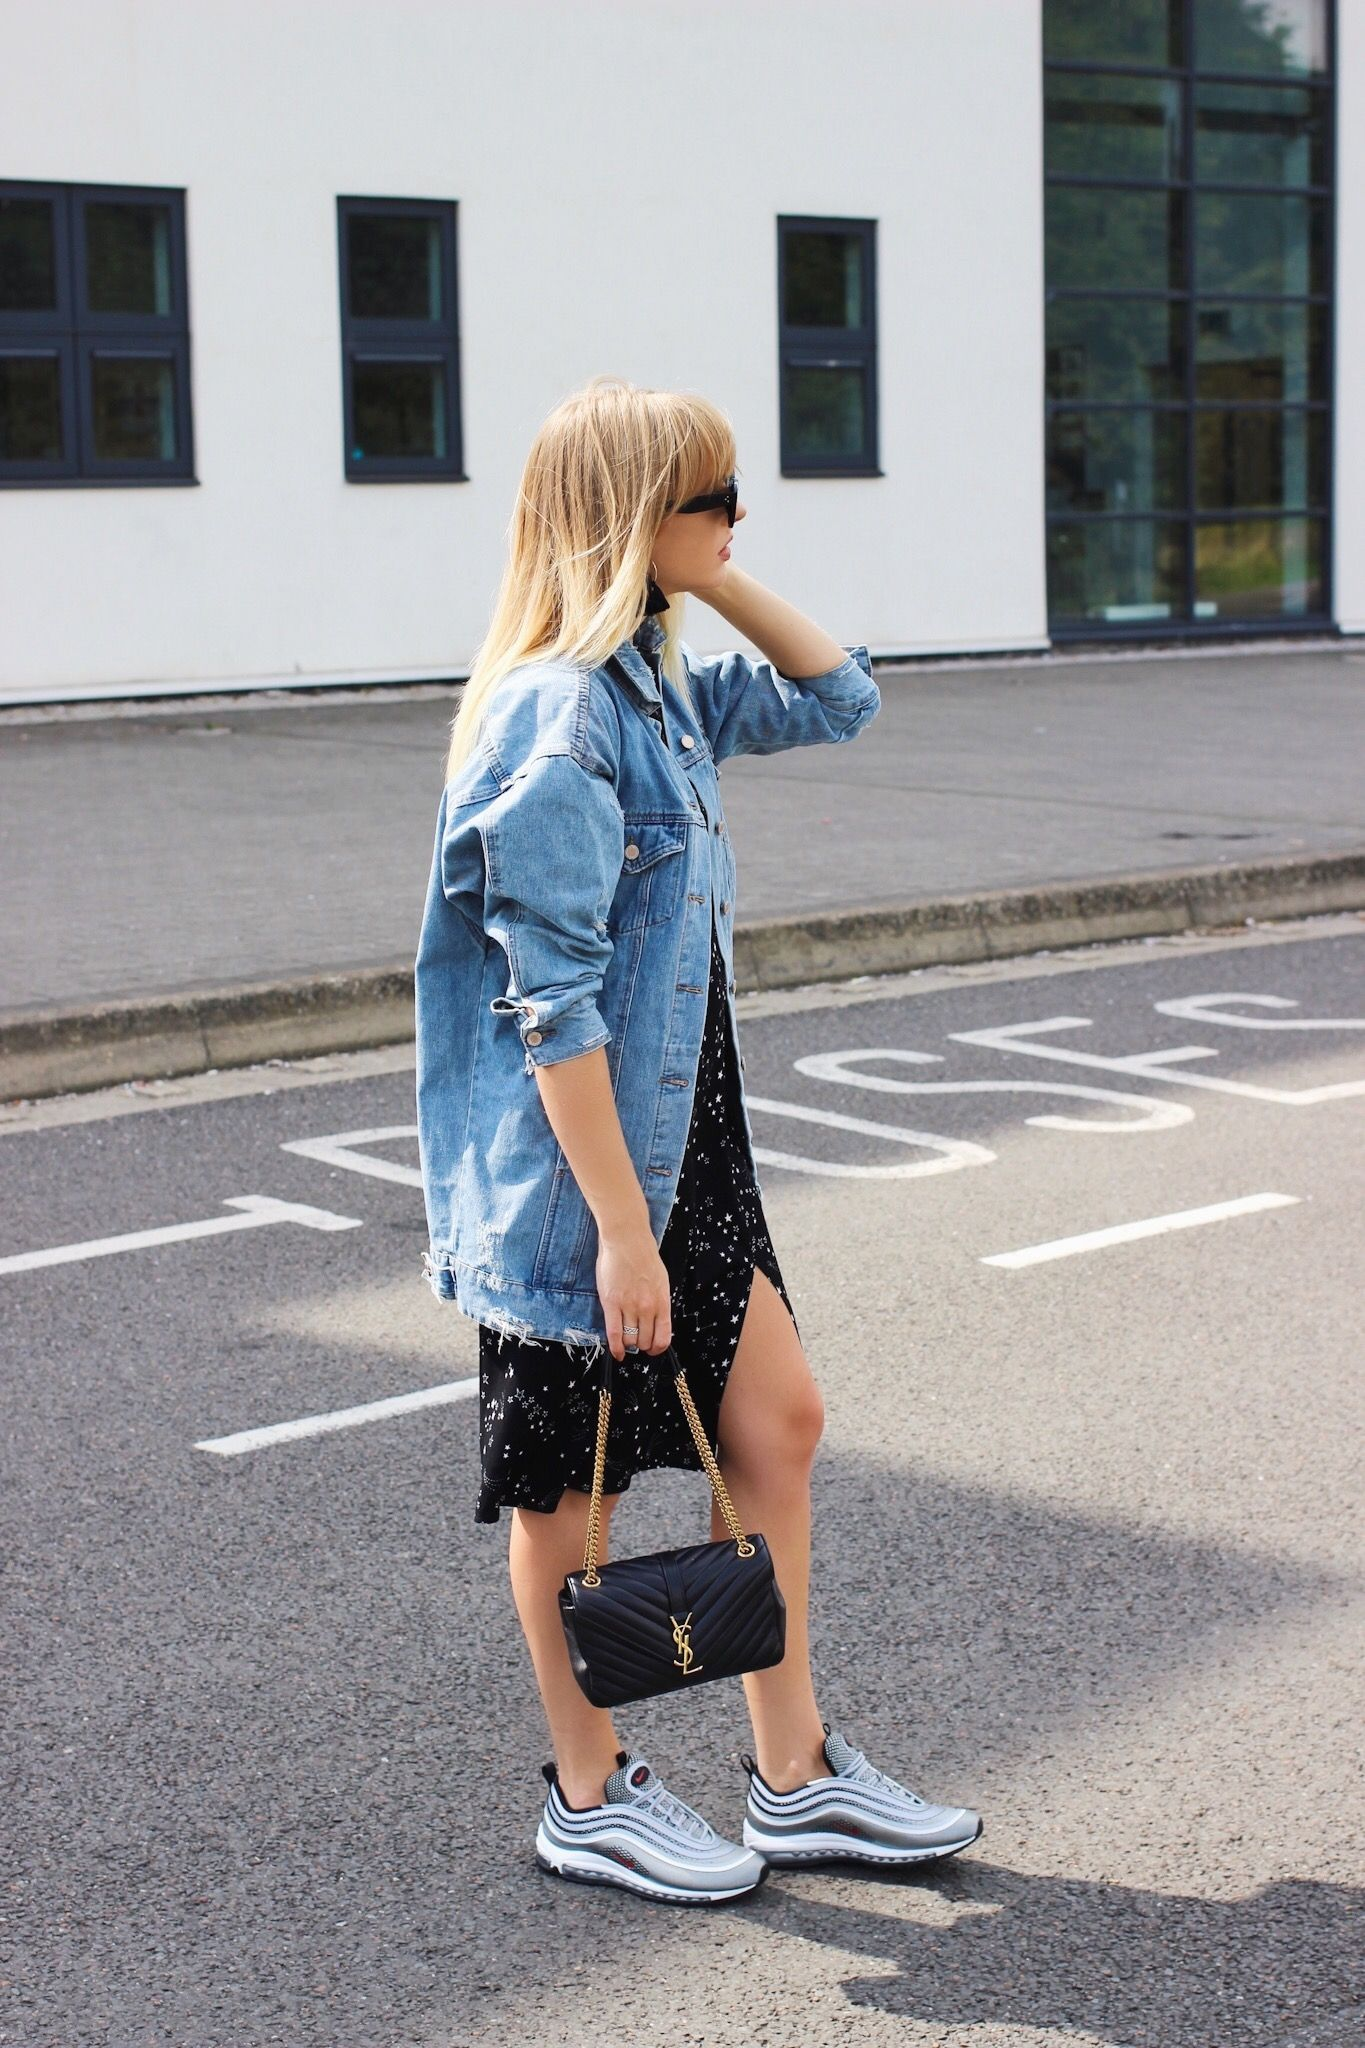 How to style trainers with a dress and oversize denim jacket on fashion  blogger charlotte buttrick 337d03b2540